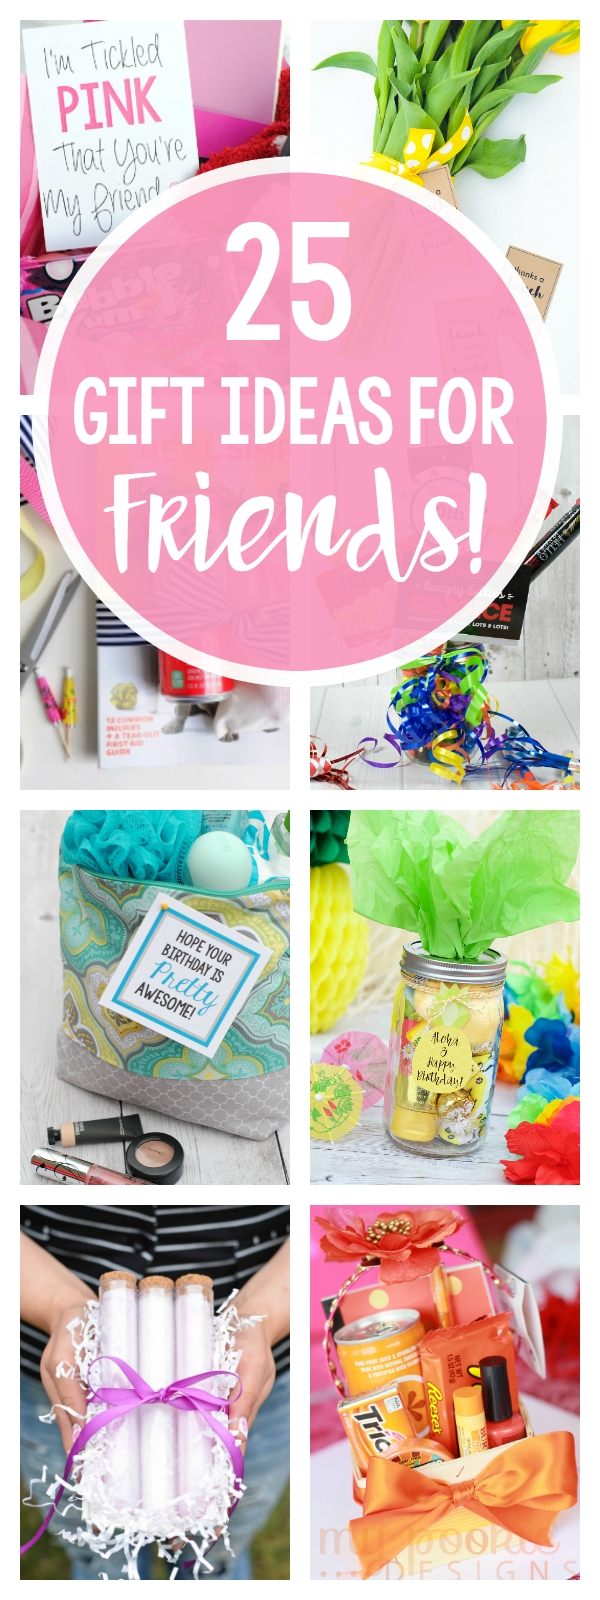 10 Most Recommended Cute Gift Ideas For Friends 25 fun gifts for best friends for any occasion fun squared 2021